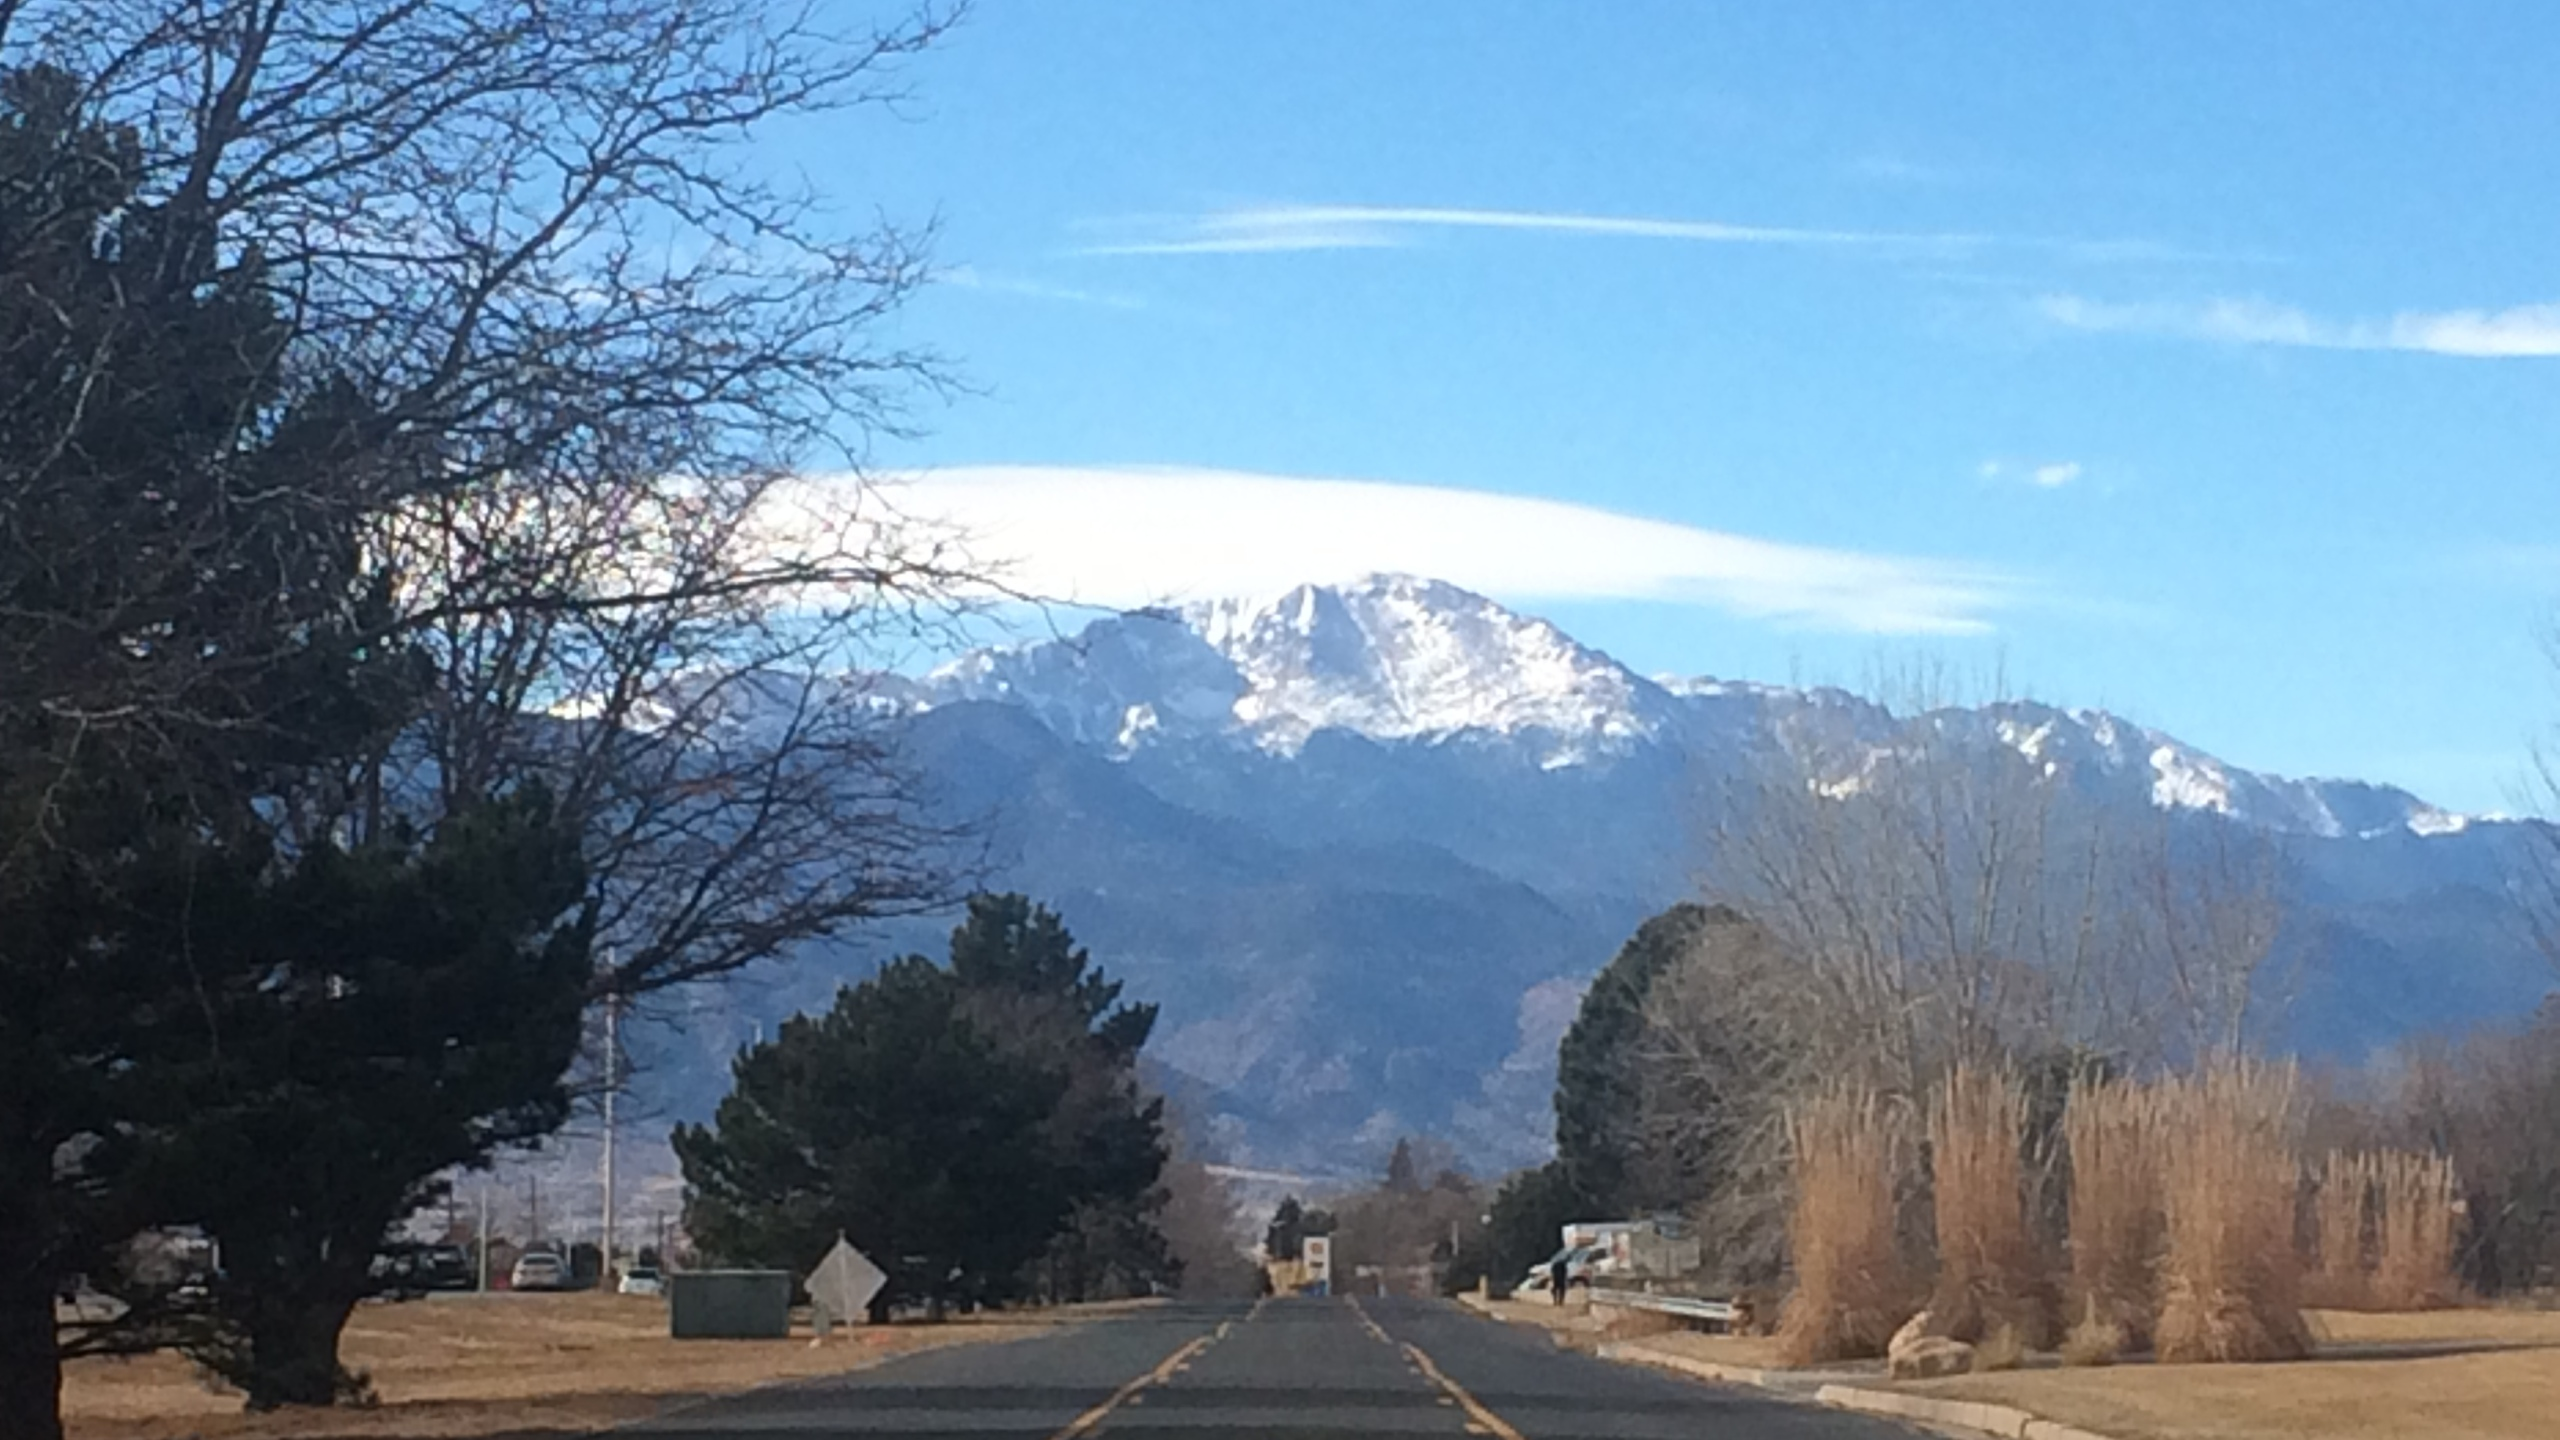 Pikes Peak as seen from eastern Colorado Springs on February 10, 2017. _ Angela Case - FOX21 News_226654